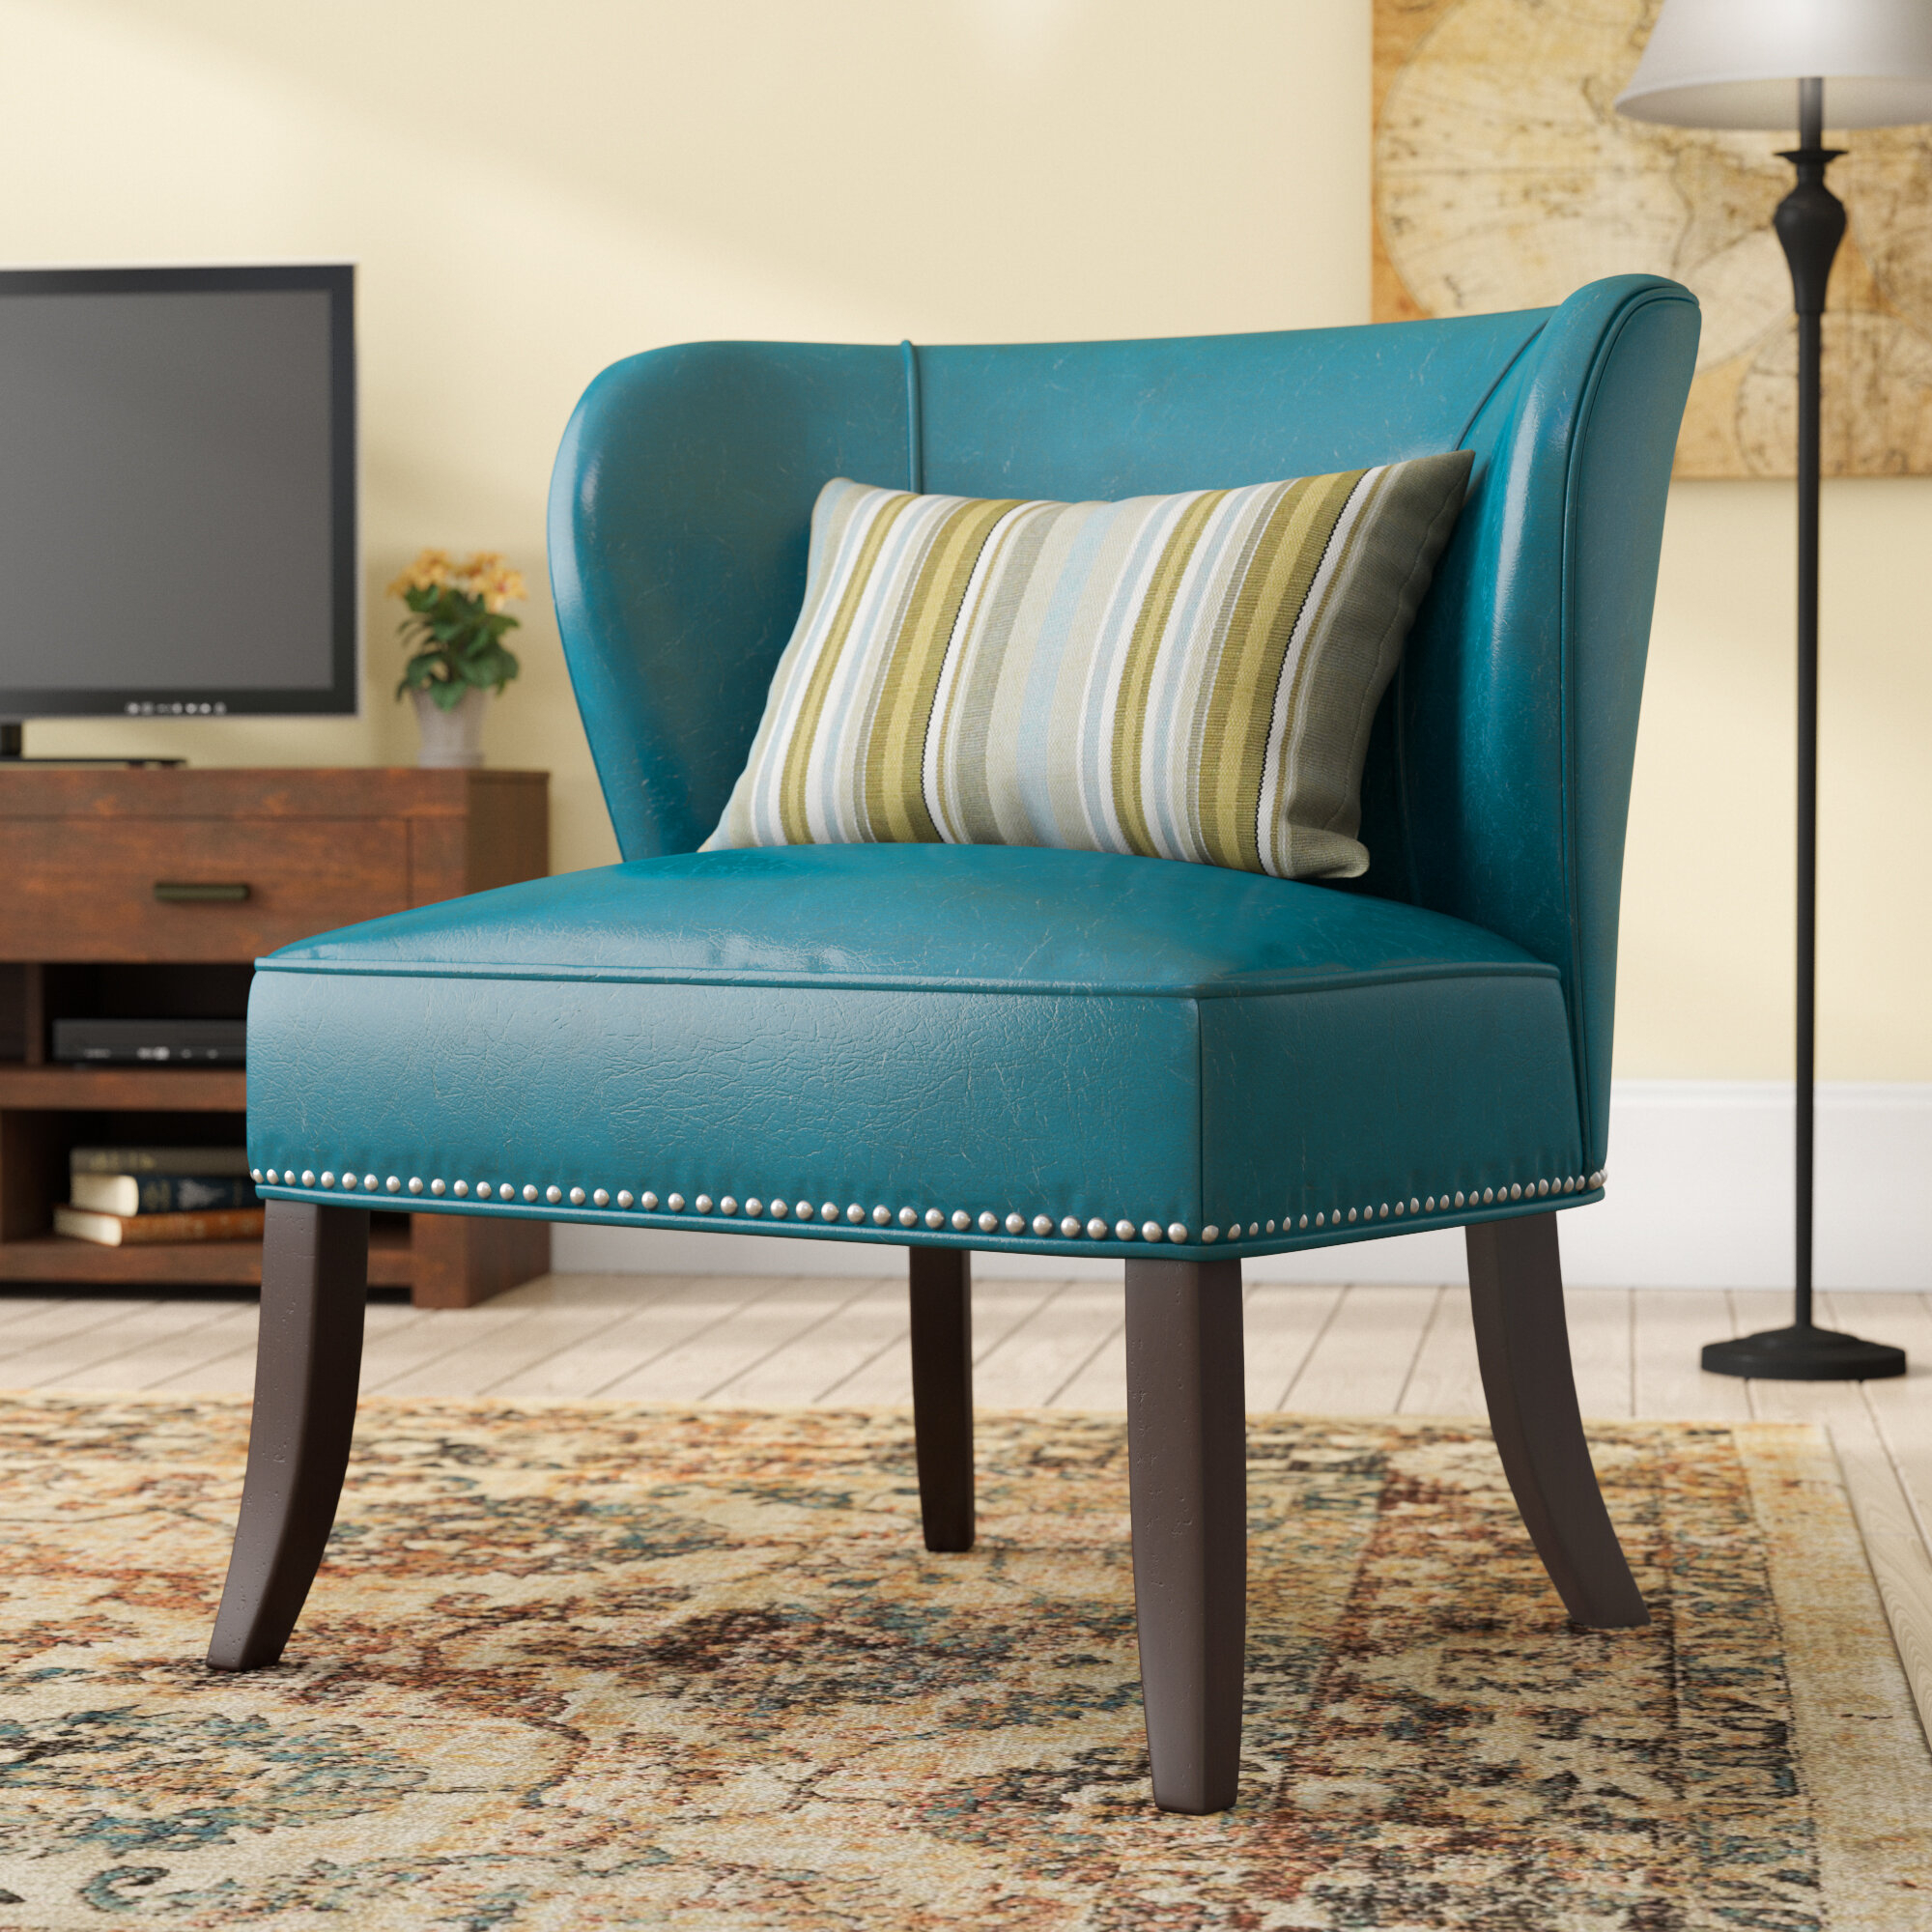 Slipper Chairs | Wayfair Pertaining To Alush Accent Slipper Chairs (Set Of 2) (View 8 of 15)